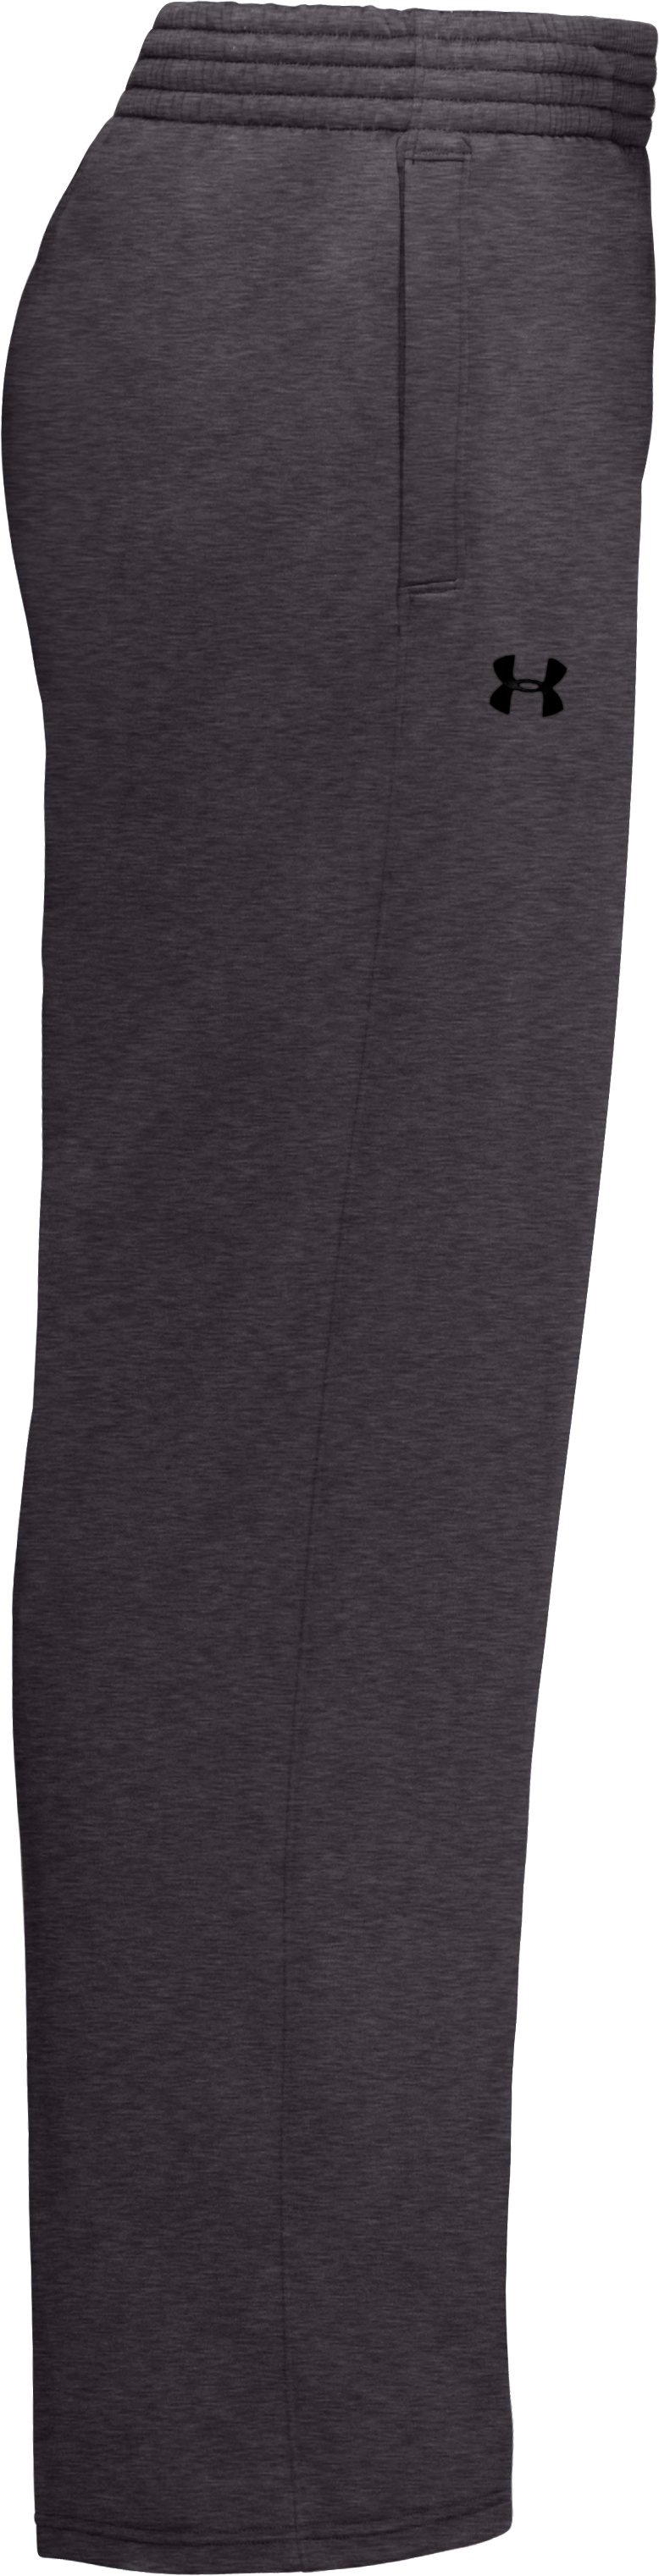 Men's Armour® Fleece Performance Pants, Carbon Heather, undefined